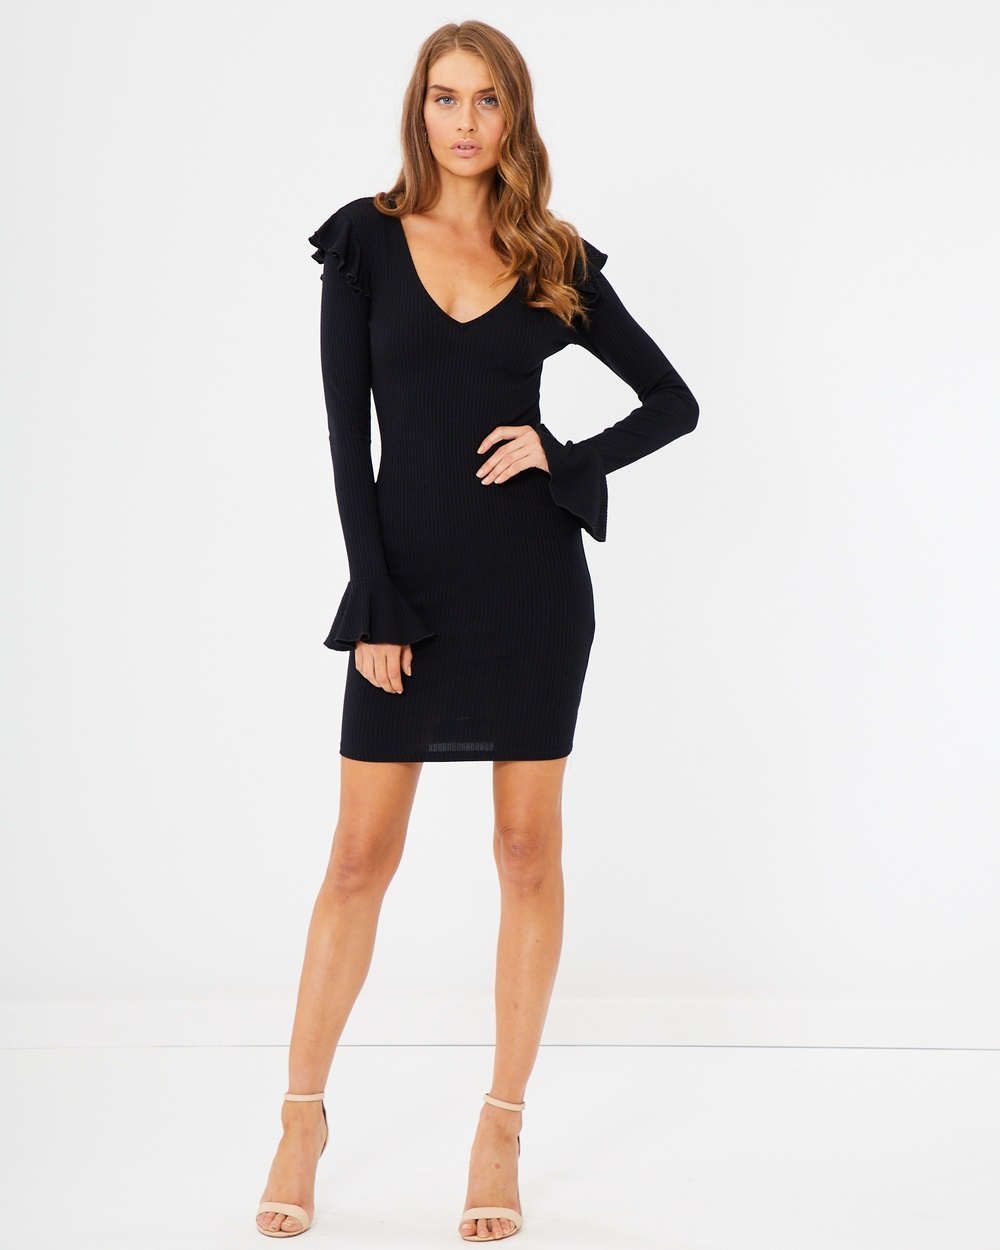 Photo of Tussah Black Una Knit Dress - beautiful dress from Tussah online